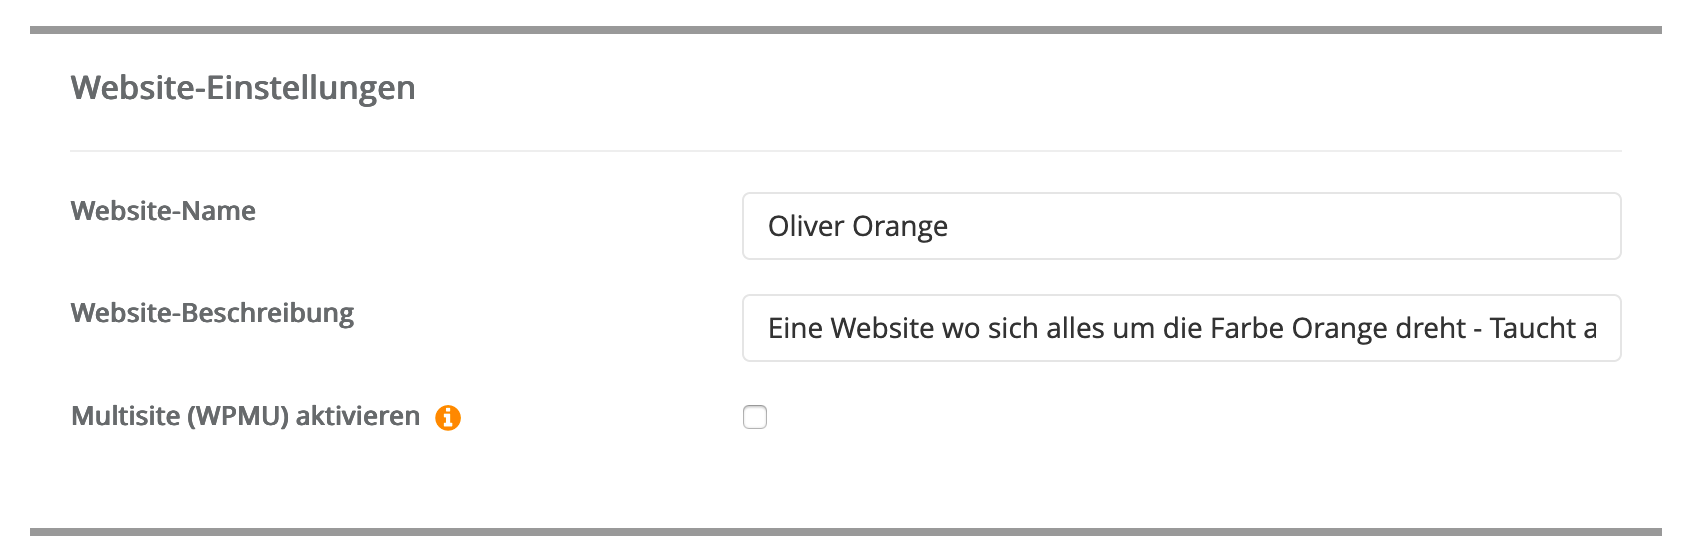 Website-Einstellungen